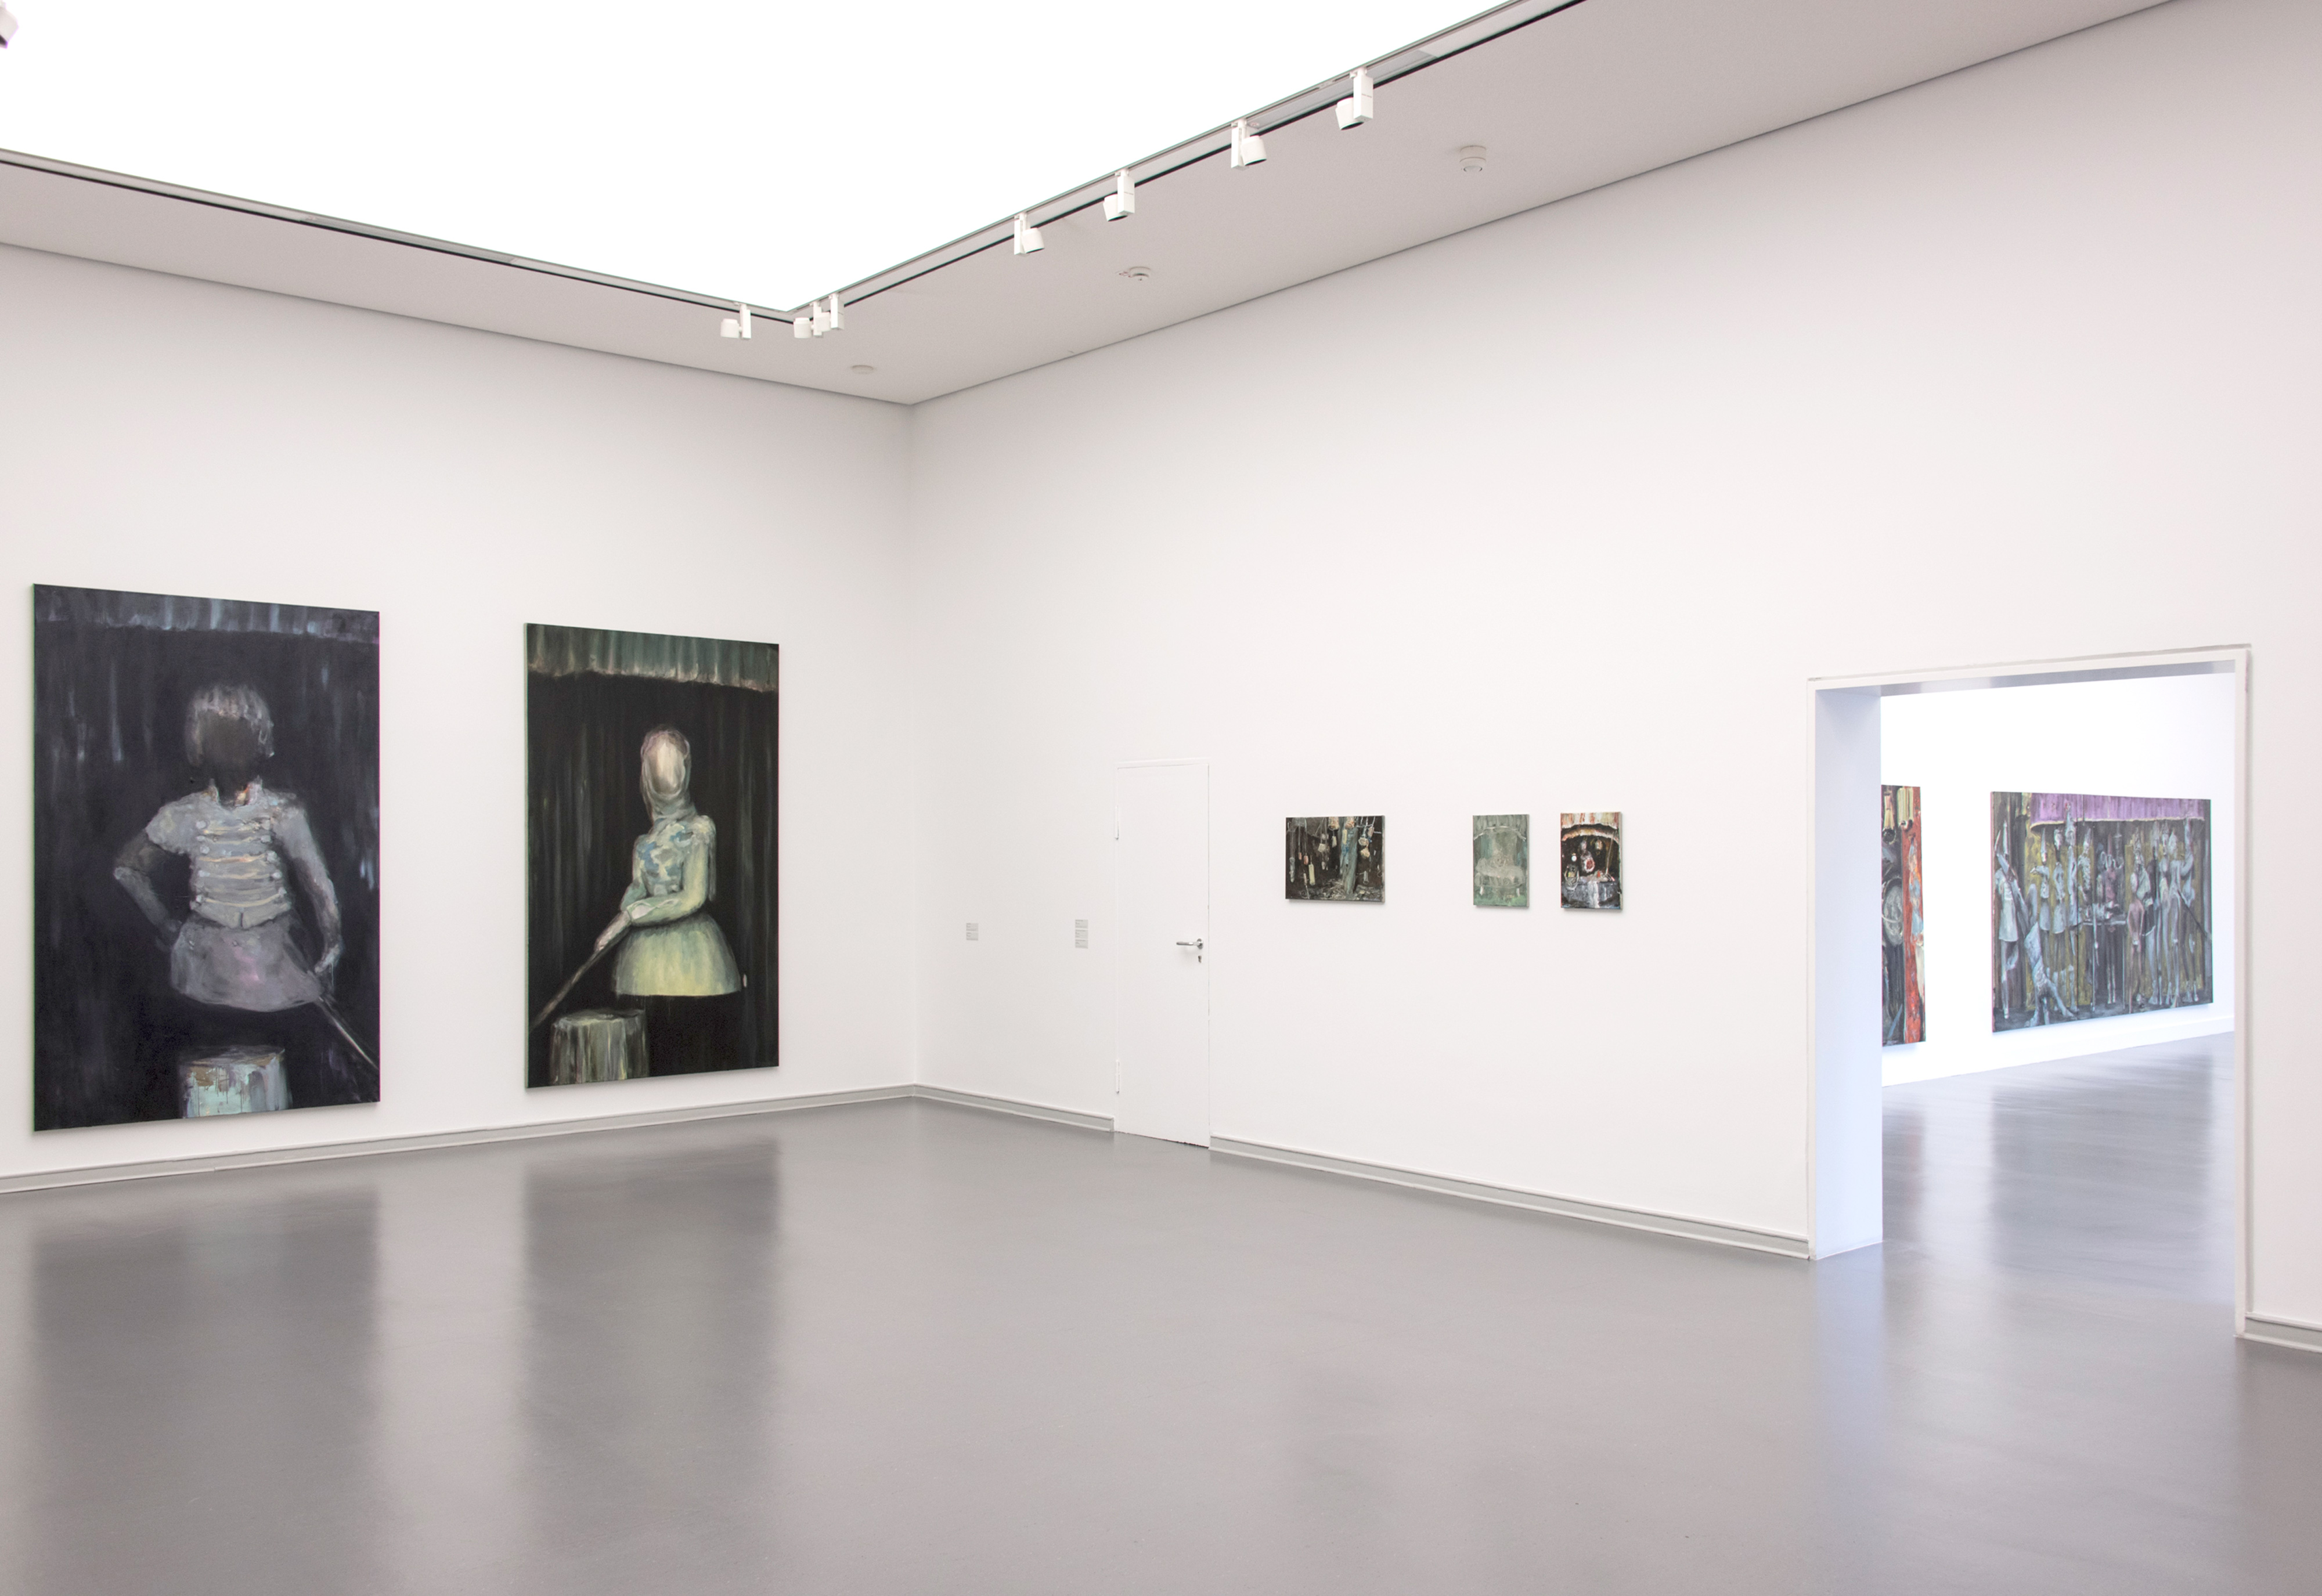 Galerie Barbara Thumm \ Valérie Favre – Solo exhibition